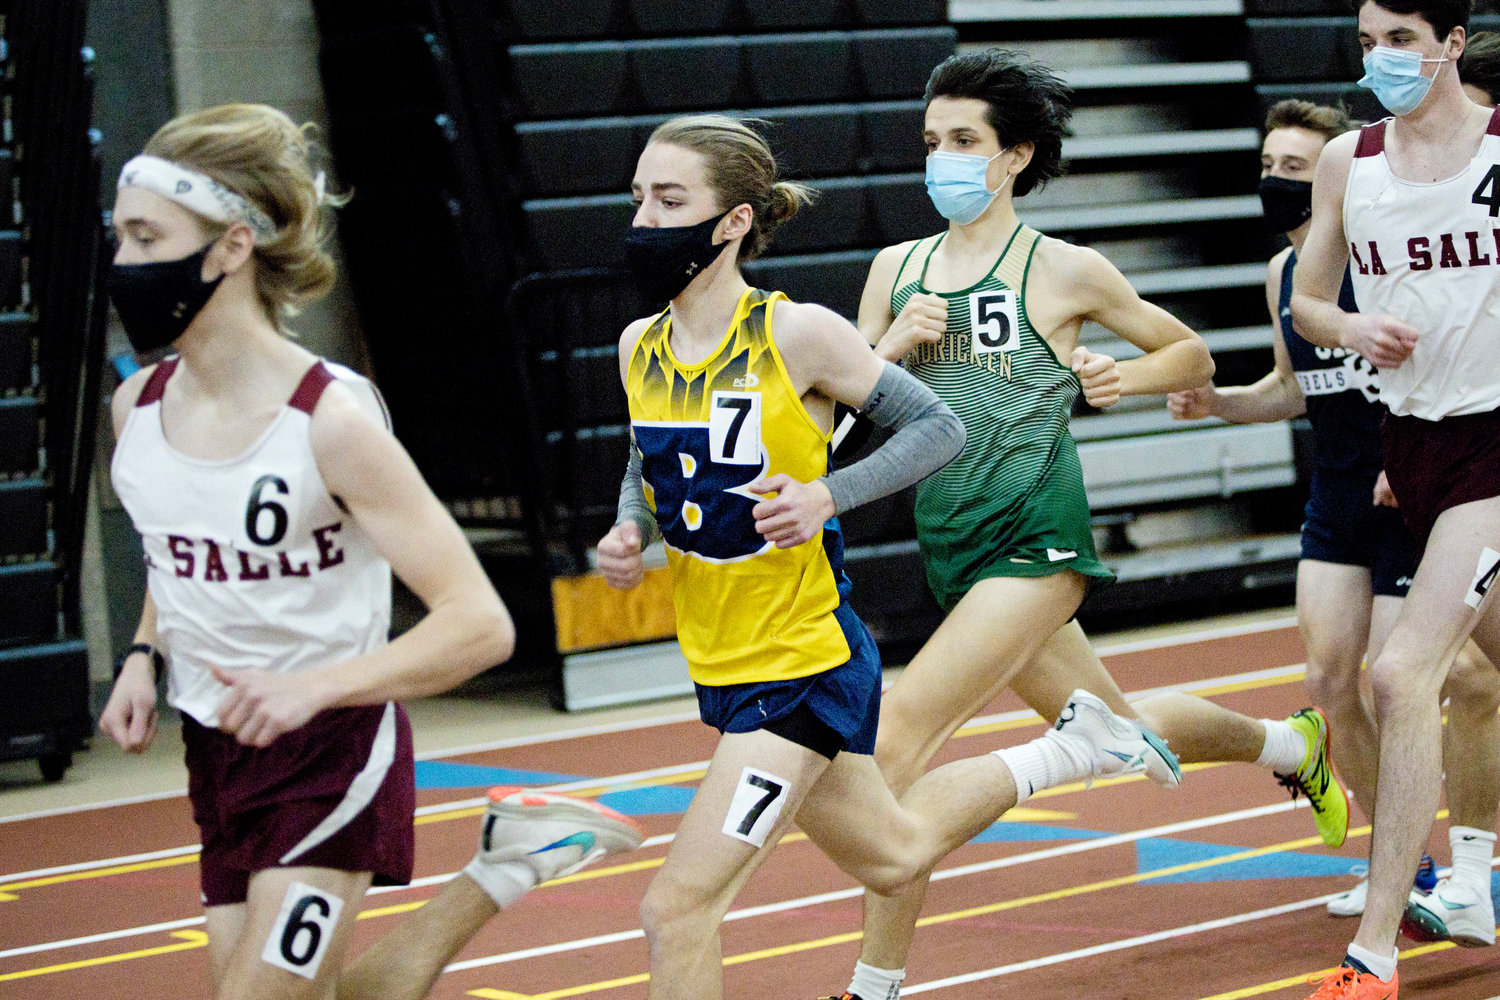 Barrington's Holden Vaughn keeps his pace while competing in the boys 1500 meter run at the Indoor State Championships, Saturday.